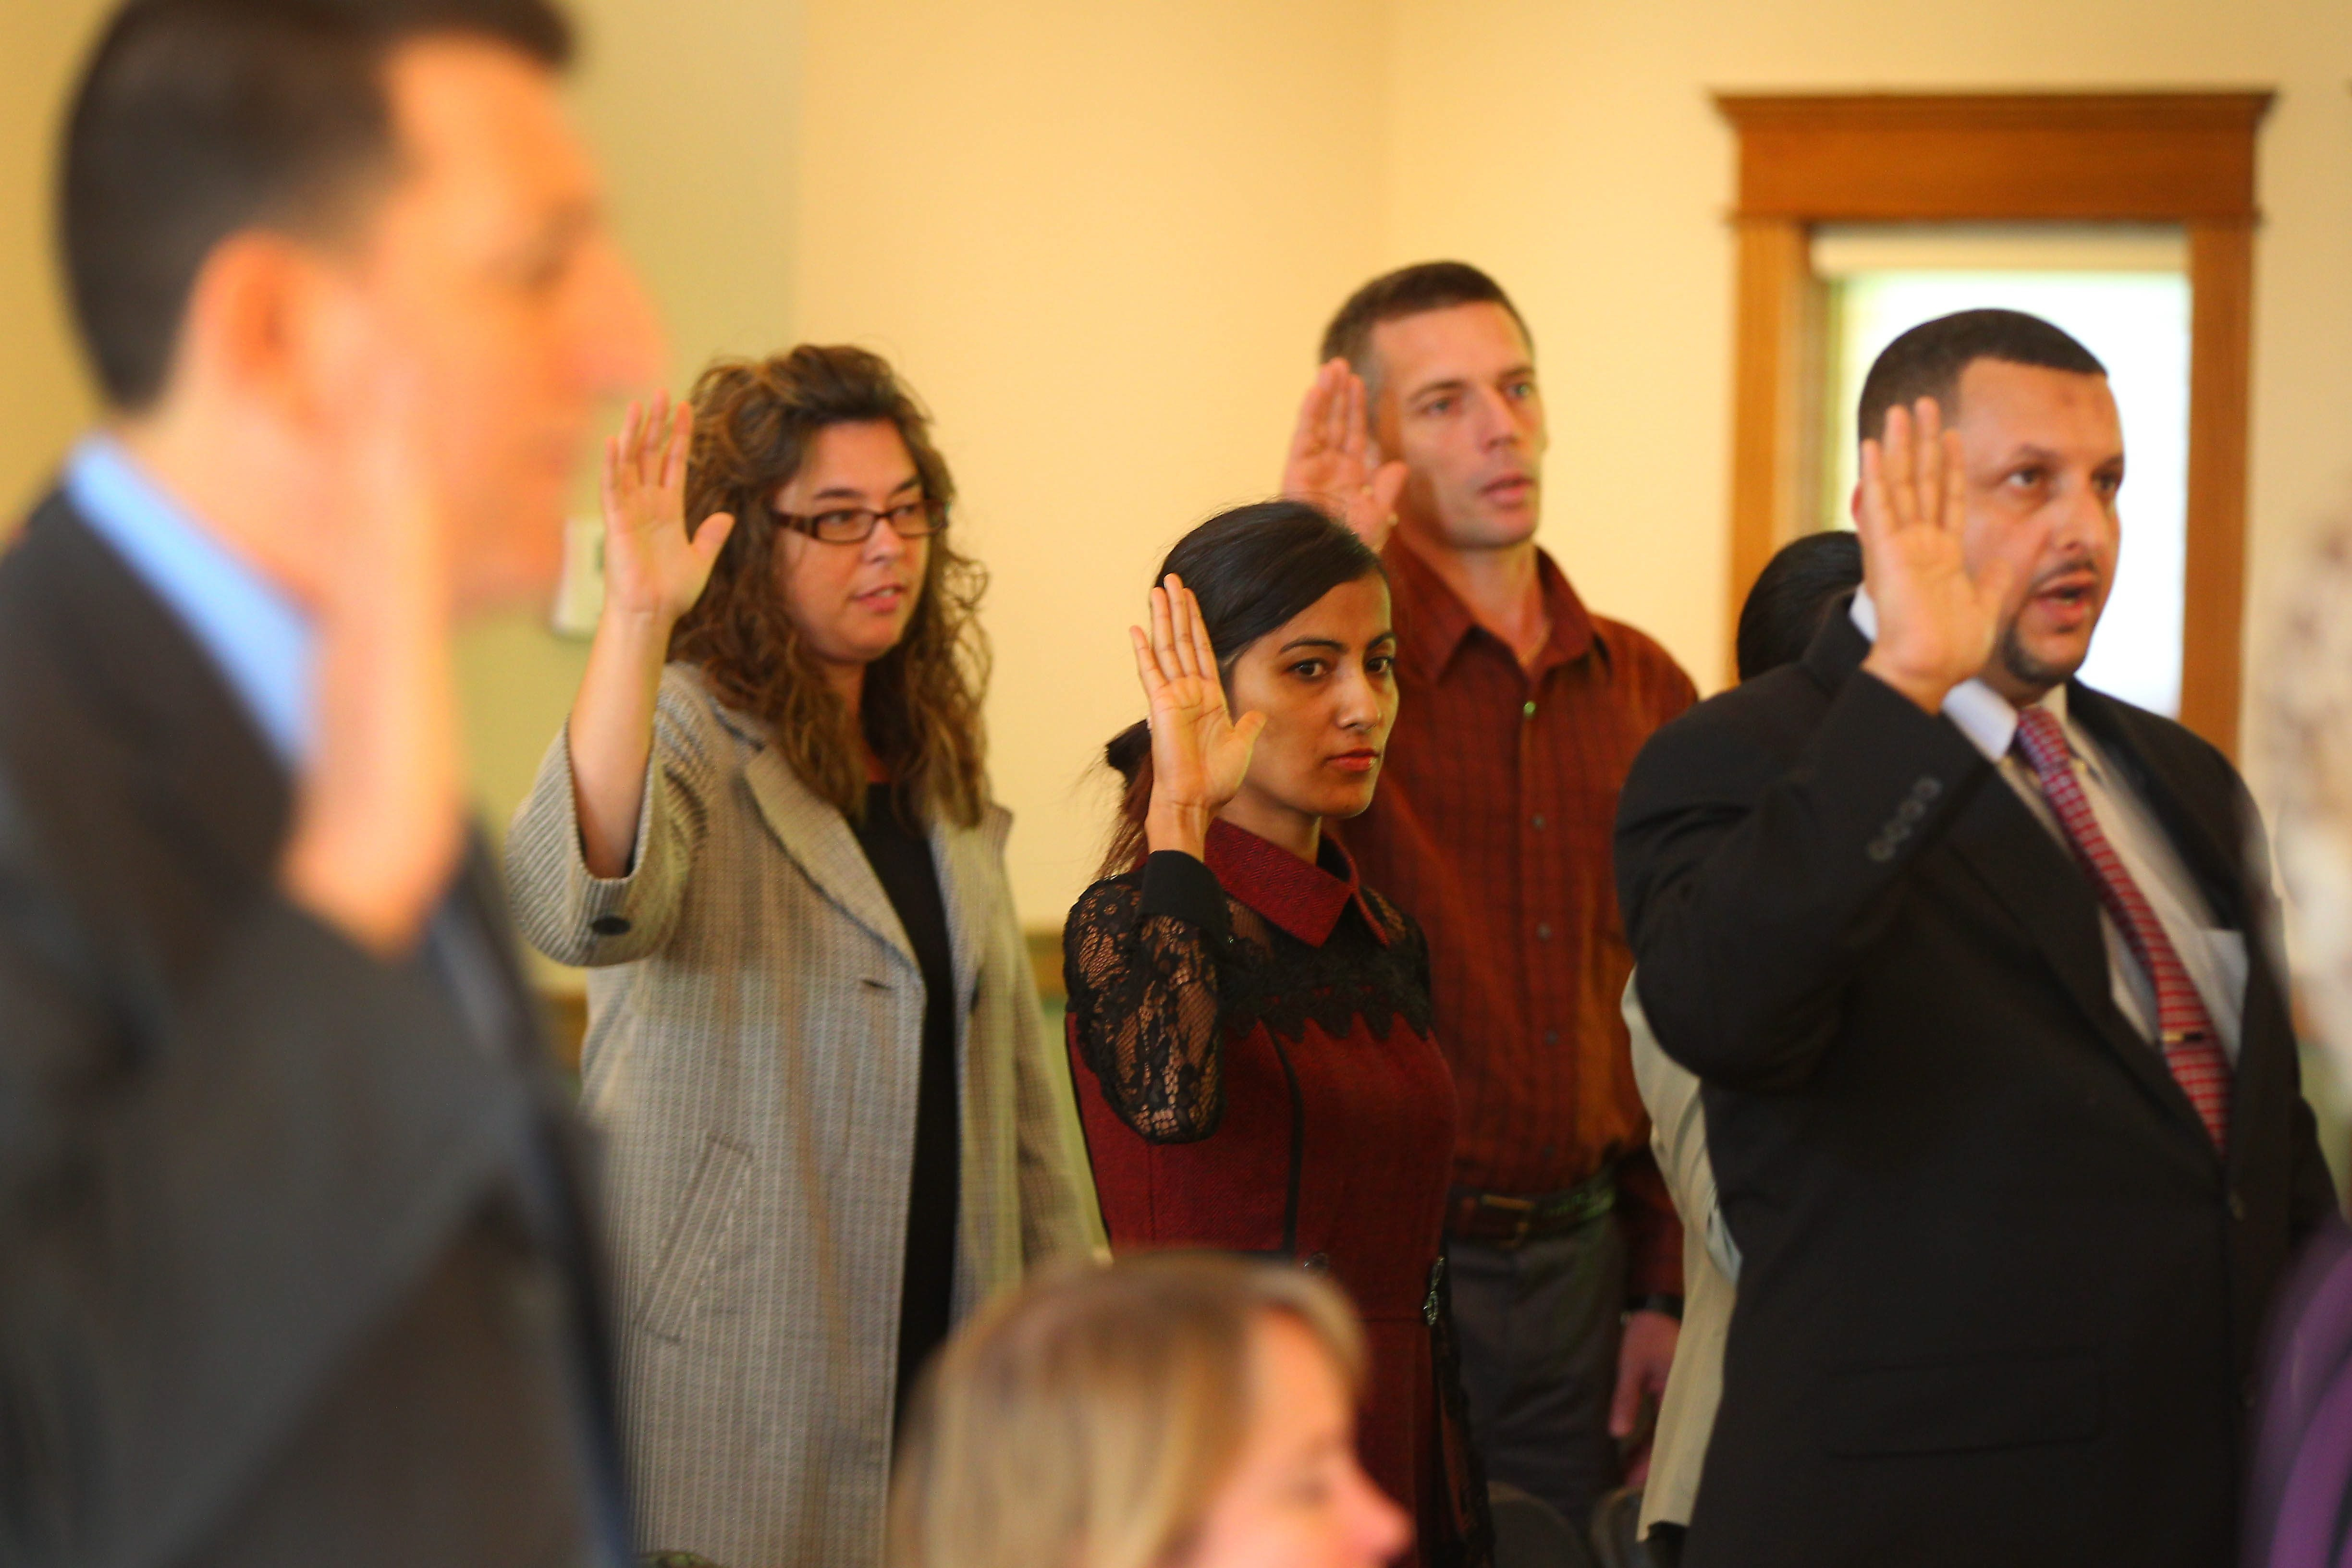 Candidates take the Oath of Allegiance administered by Magistrate Judge Leslie G. Foschio on Monday at the Theodore Roosevelt Inaugural National Historic site in Buffalo.